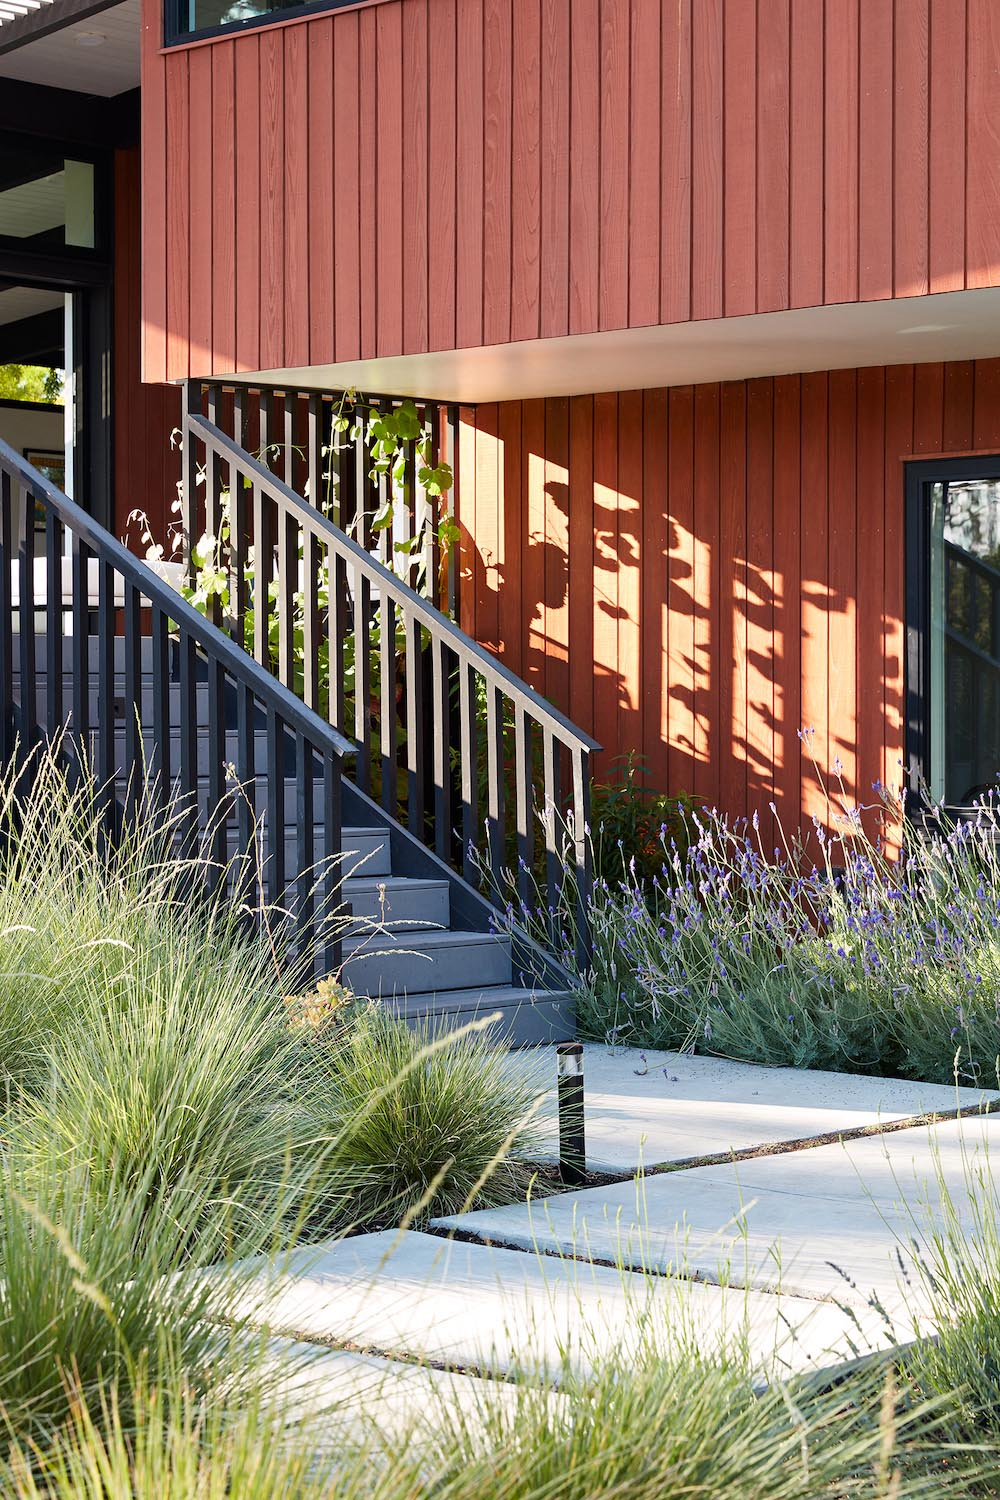 Contemporary remodel included refinishing the wood siding, and updating the stairs and pathway.